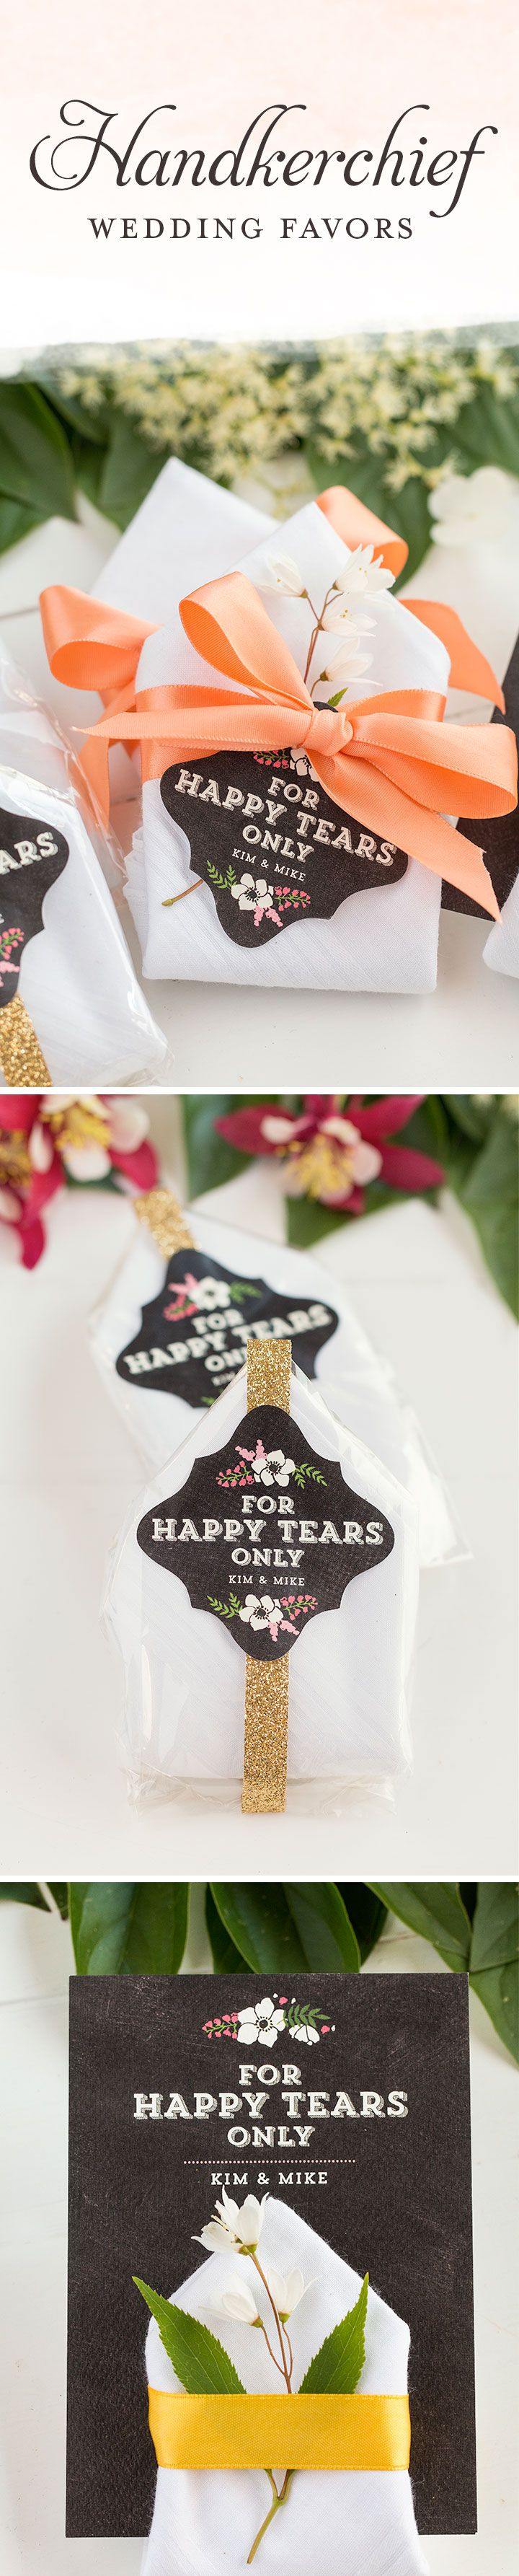 """For Happy Tears Only"" Three ways to package wedding favor handkerchiefs. Super easy and surprisingly cheap!"